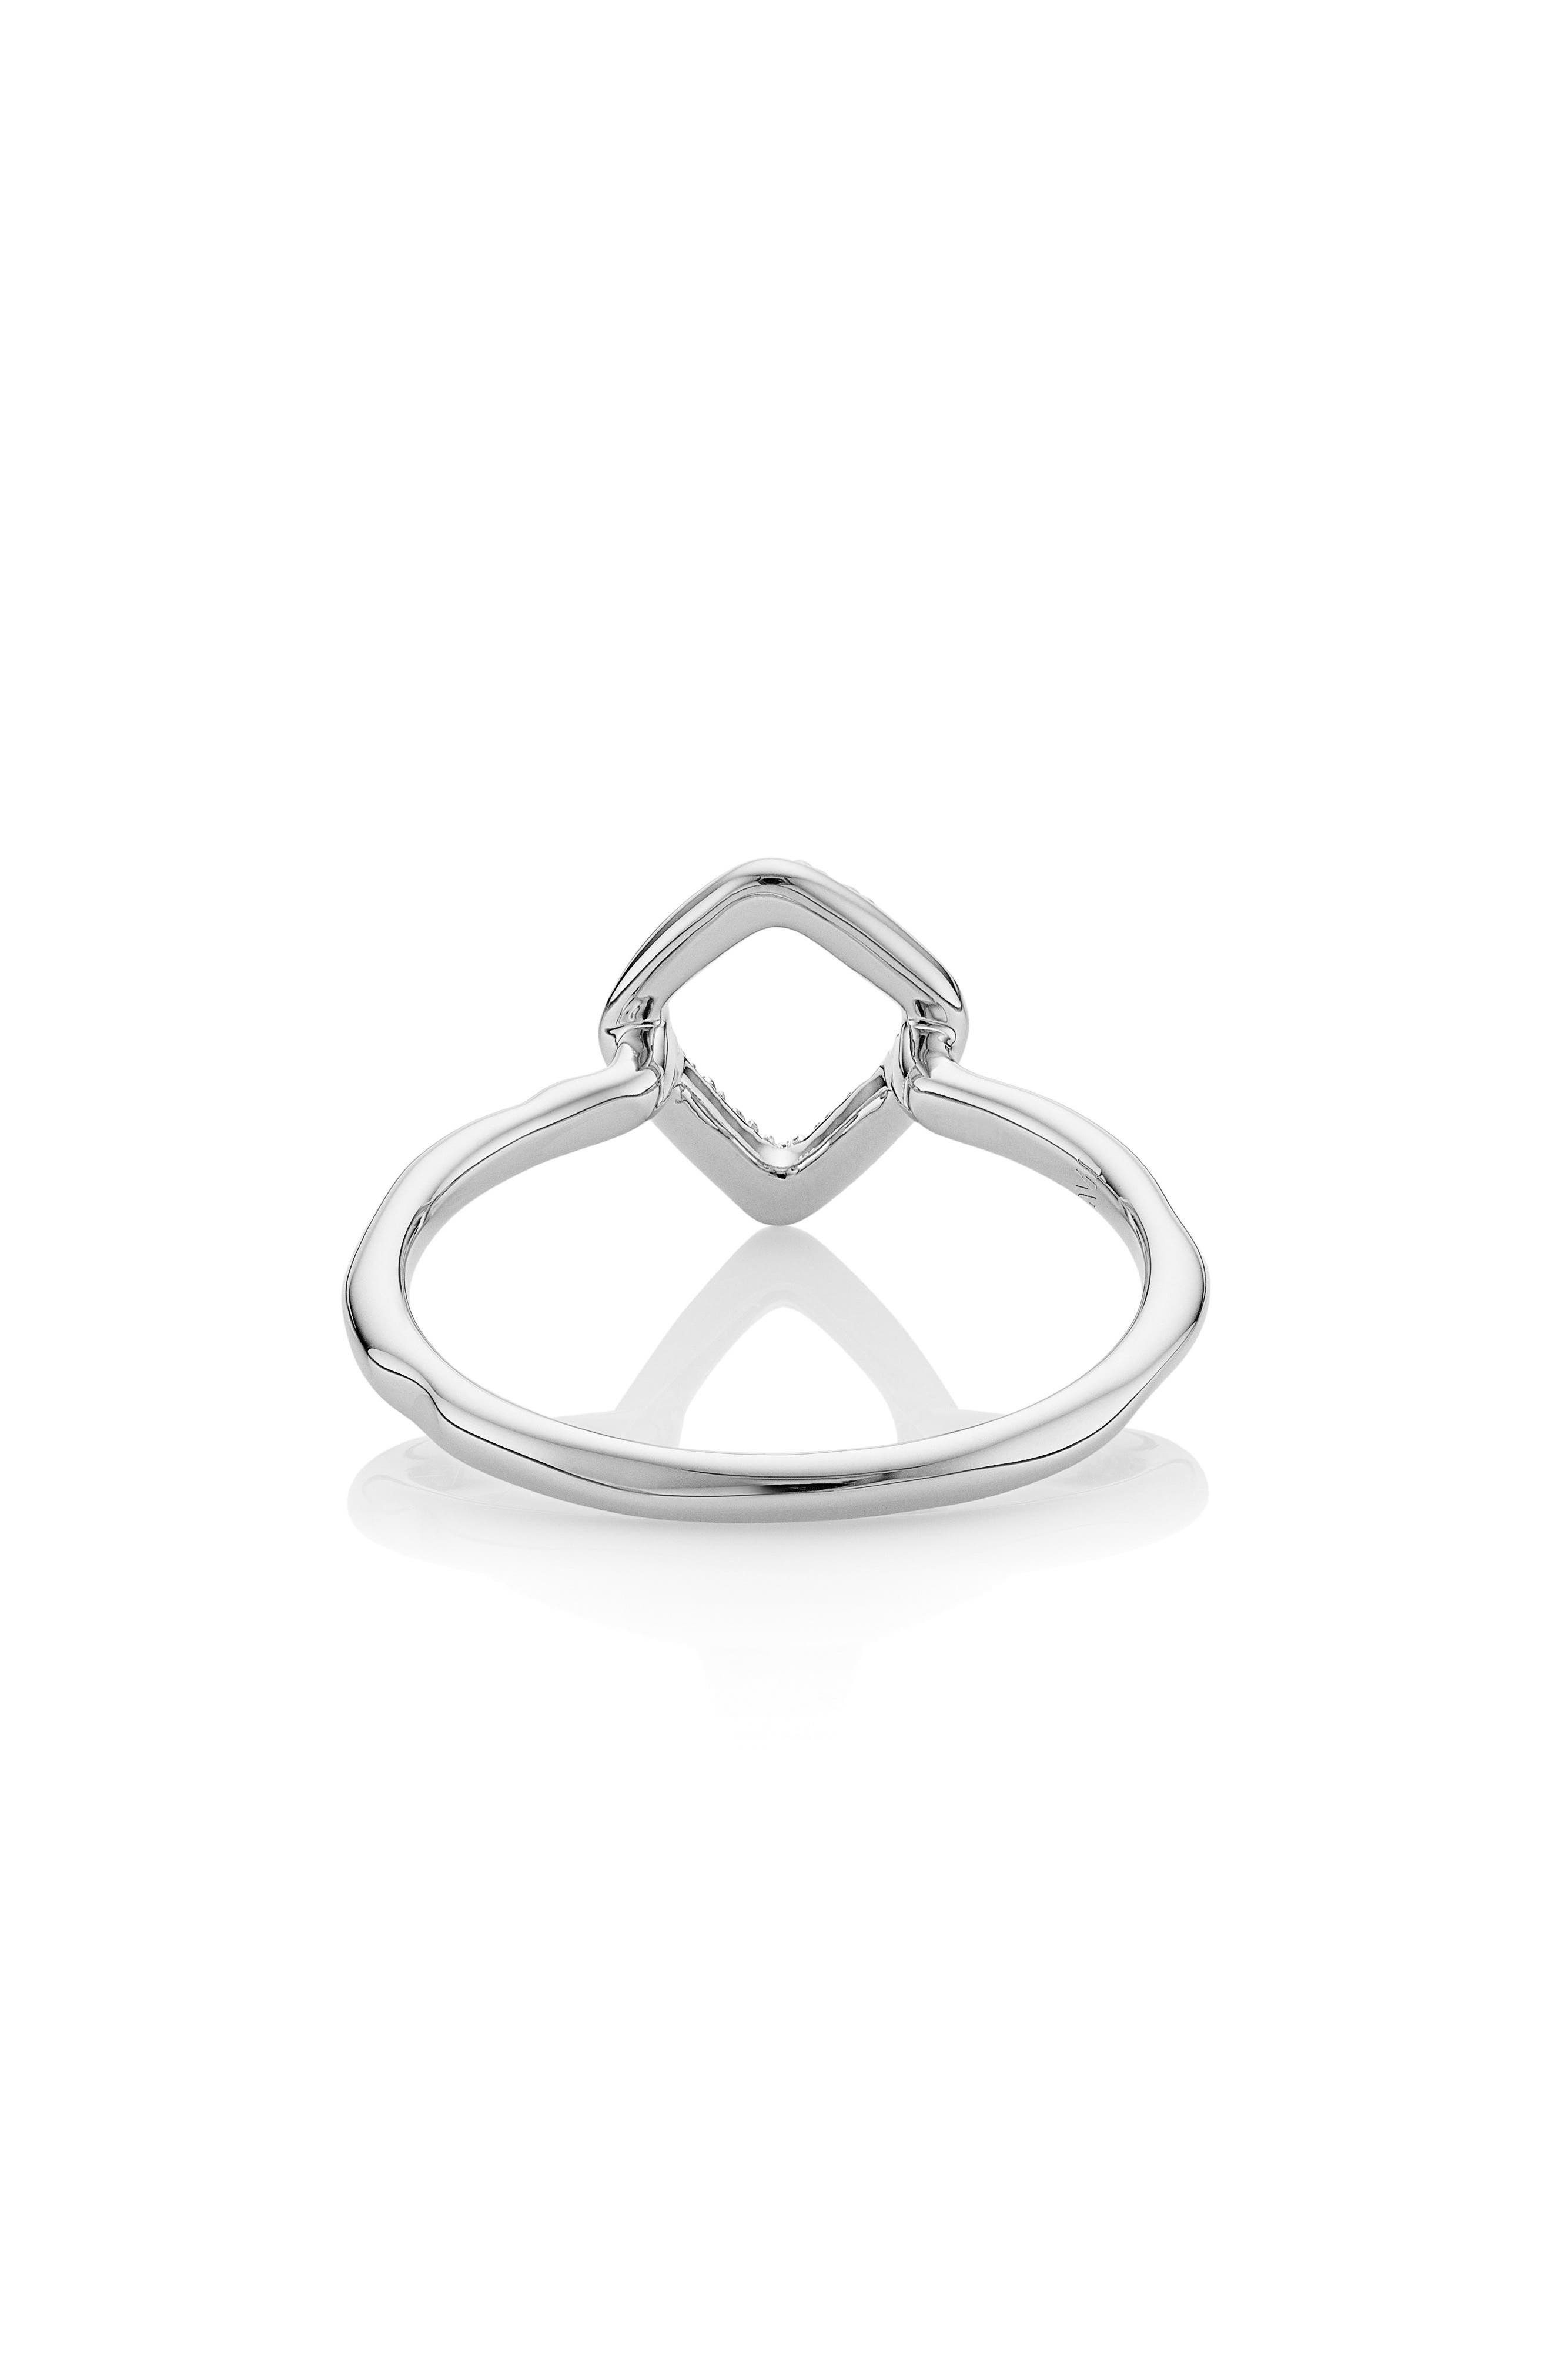 MONICA VINADER, Riva Mini Kite Diamond Stacking Ring, Alternate thumbnail 2, color, SILVER